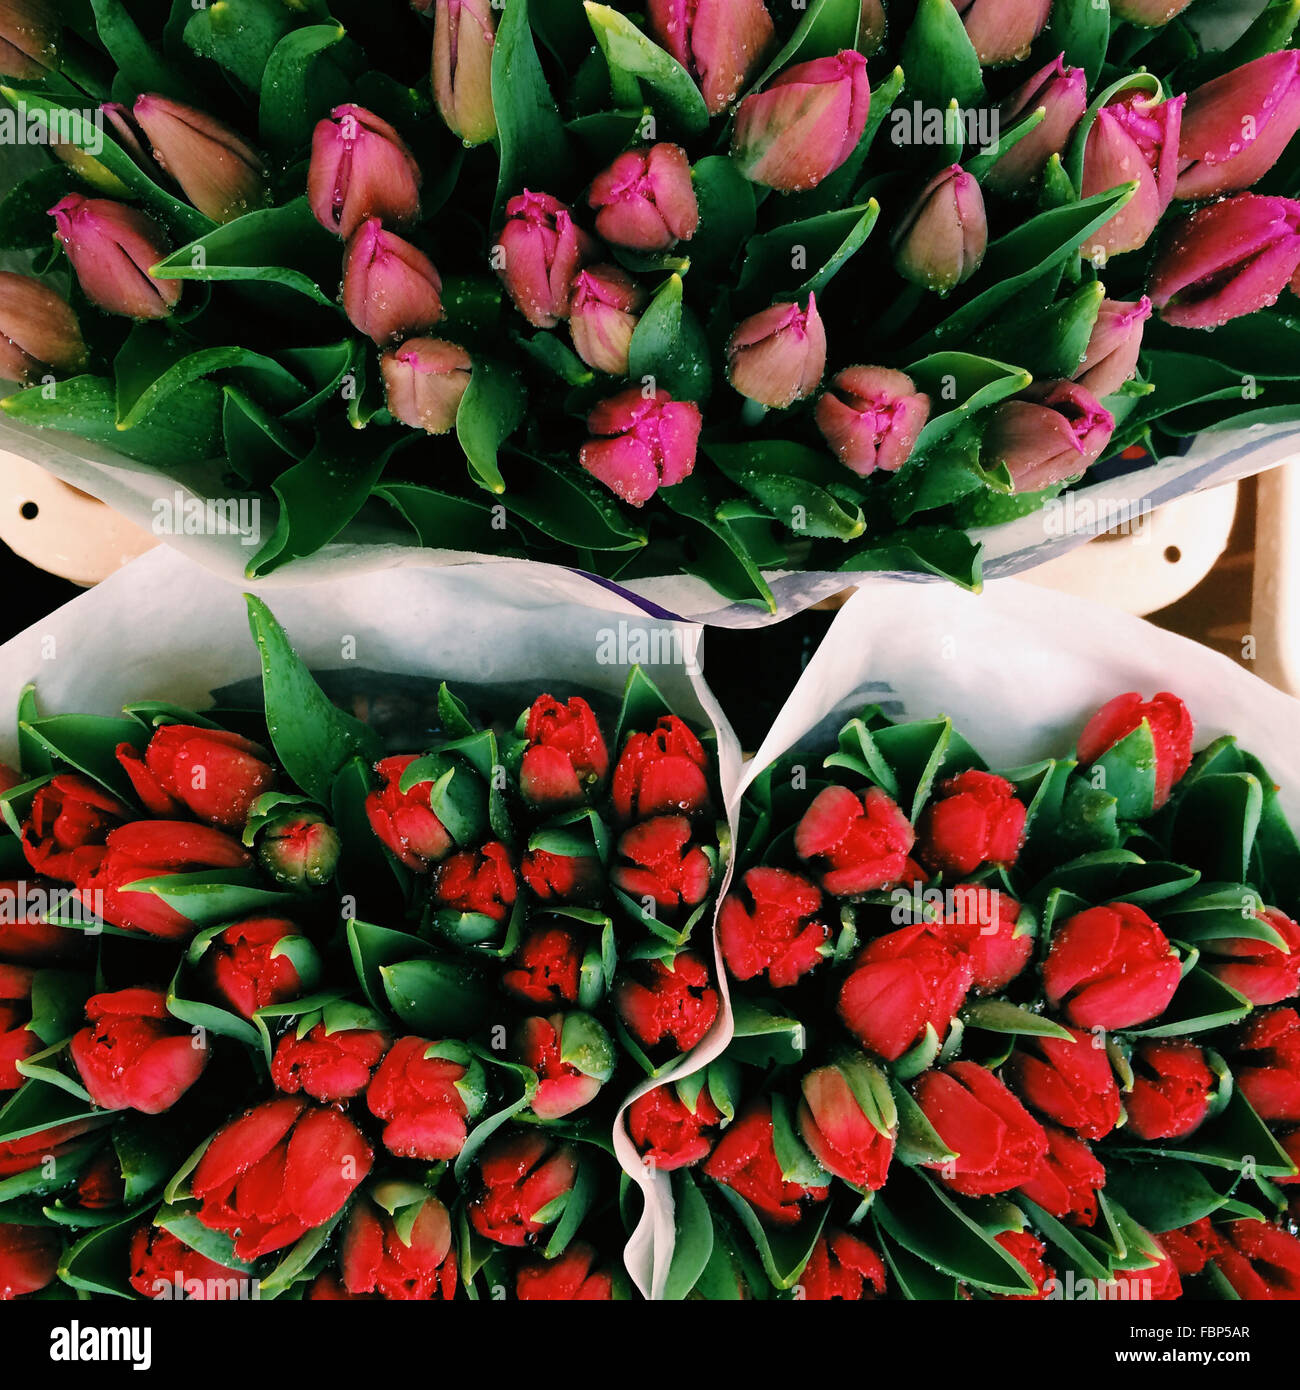 Full Frame Shot Of Rose Buds For Sale In Market - Stock Image